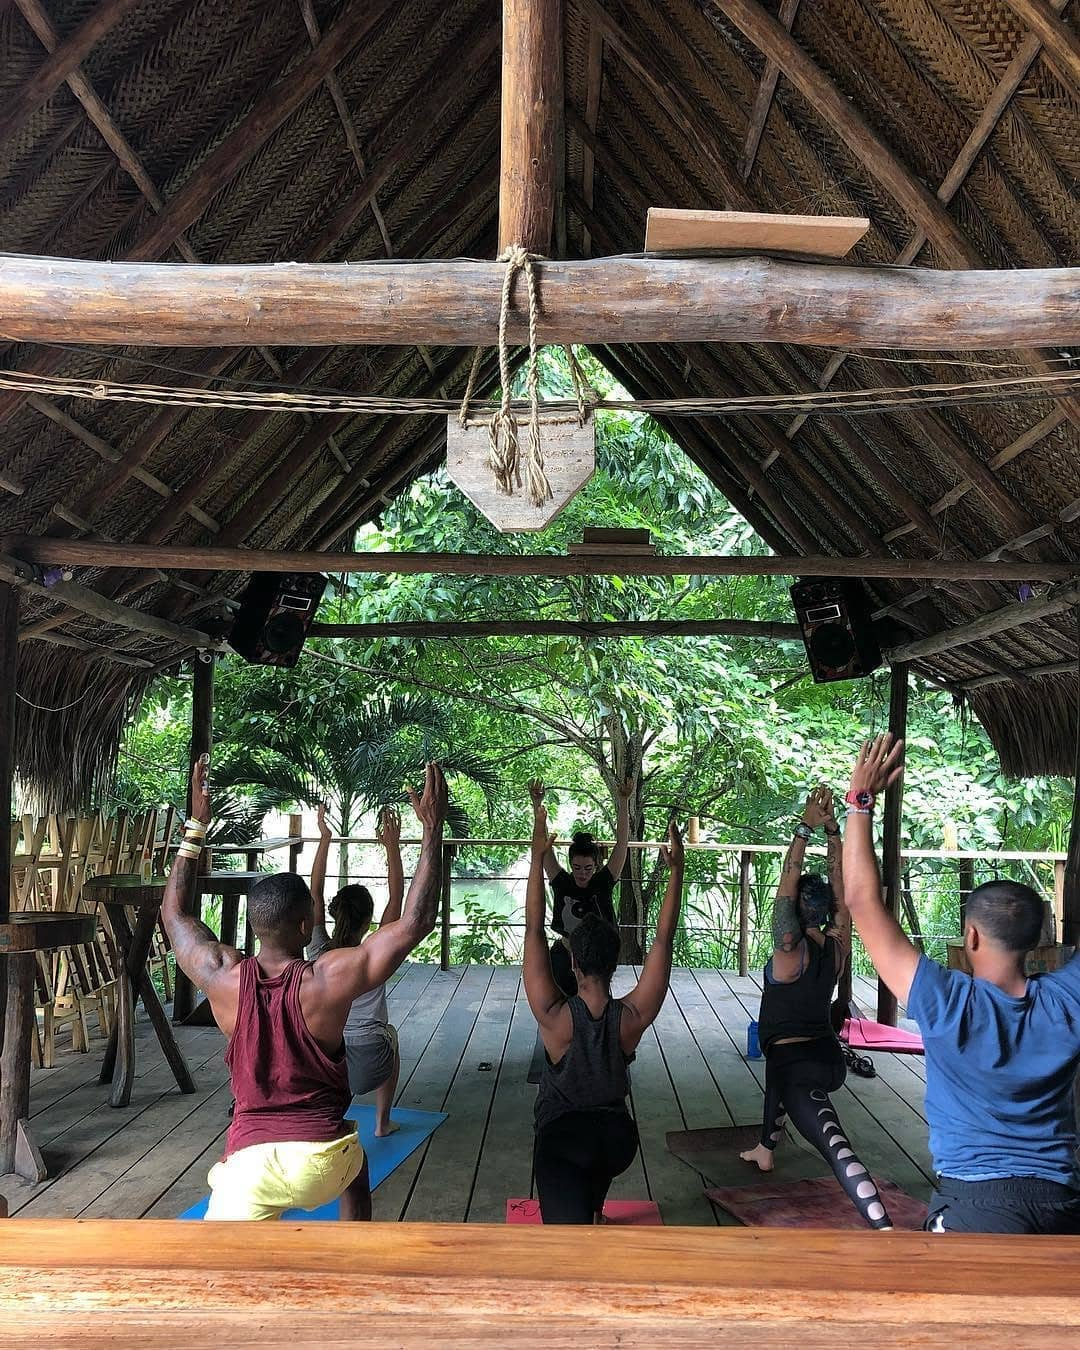 how to avoid overtourism, people doing yoga in a wooden shack